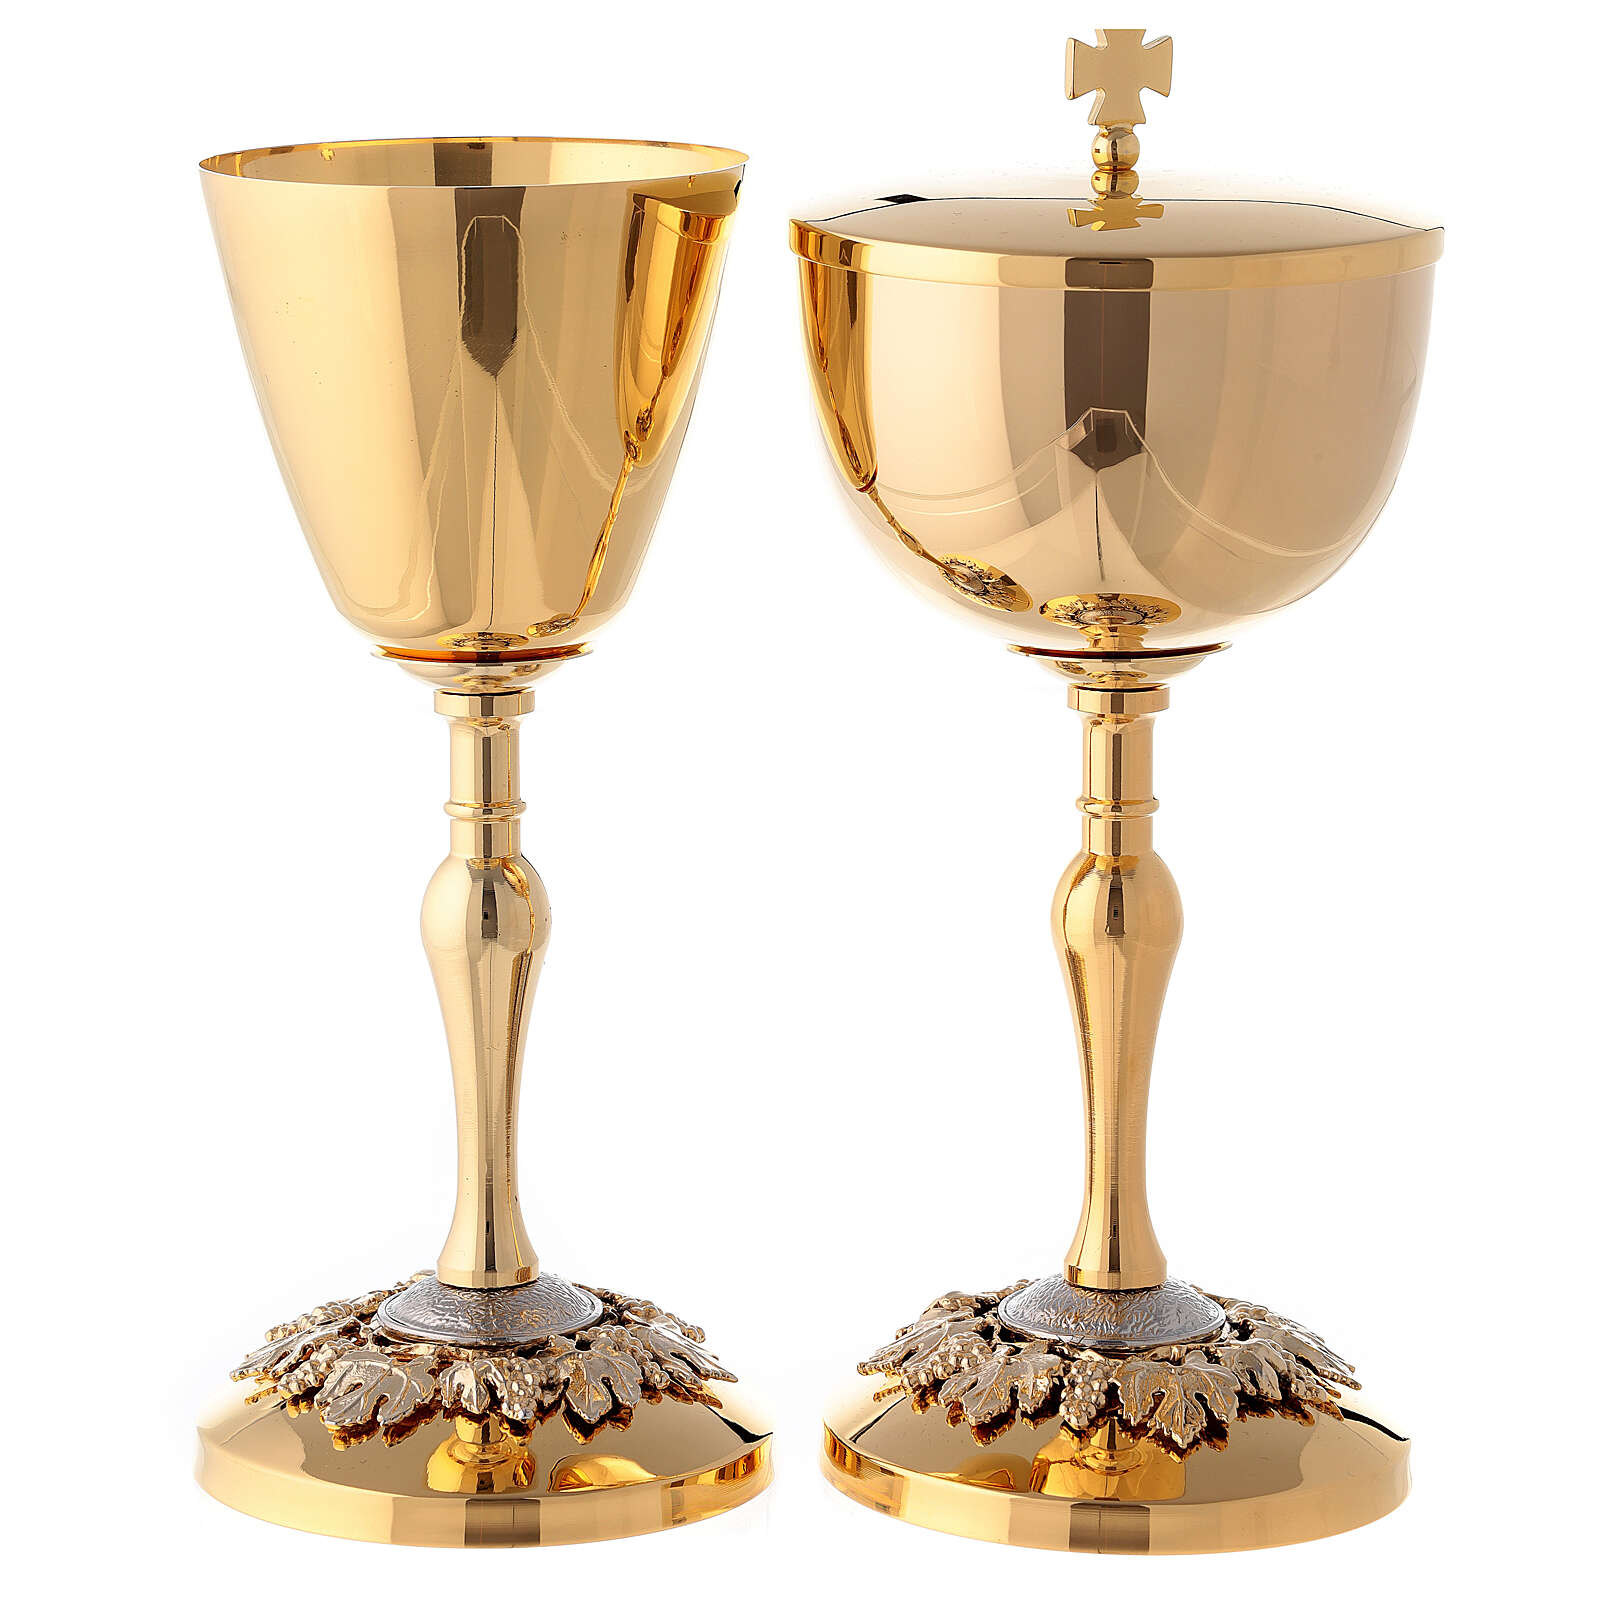 Gold plated brass chalice and ciborium with embossed leaves and grapes 4